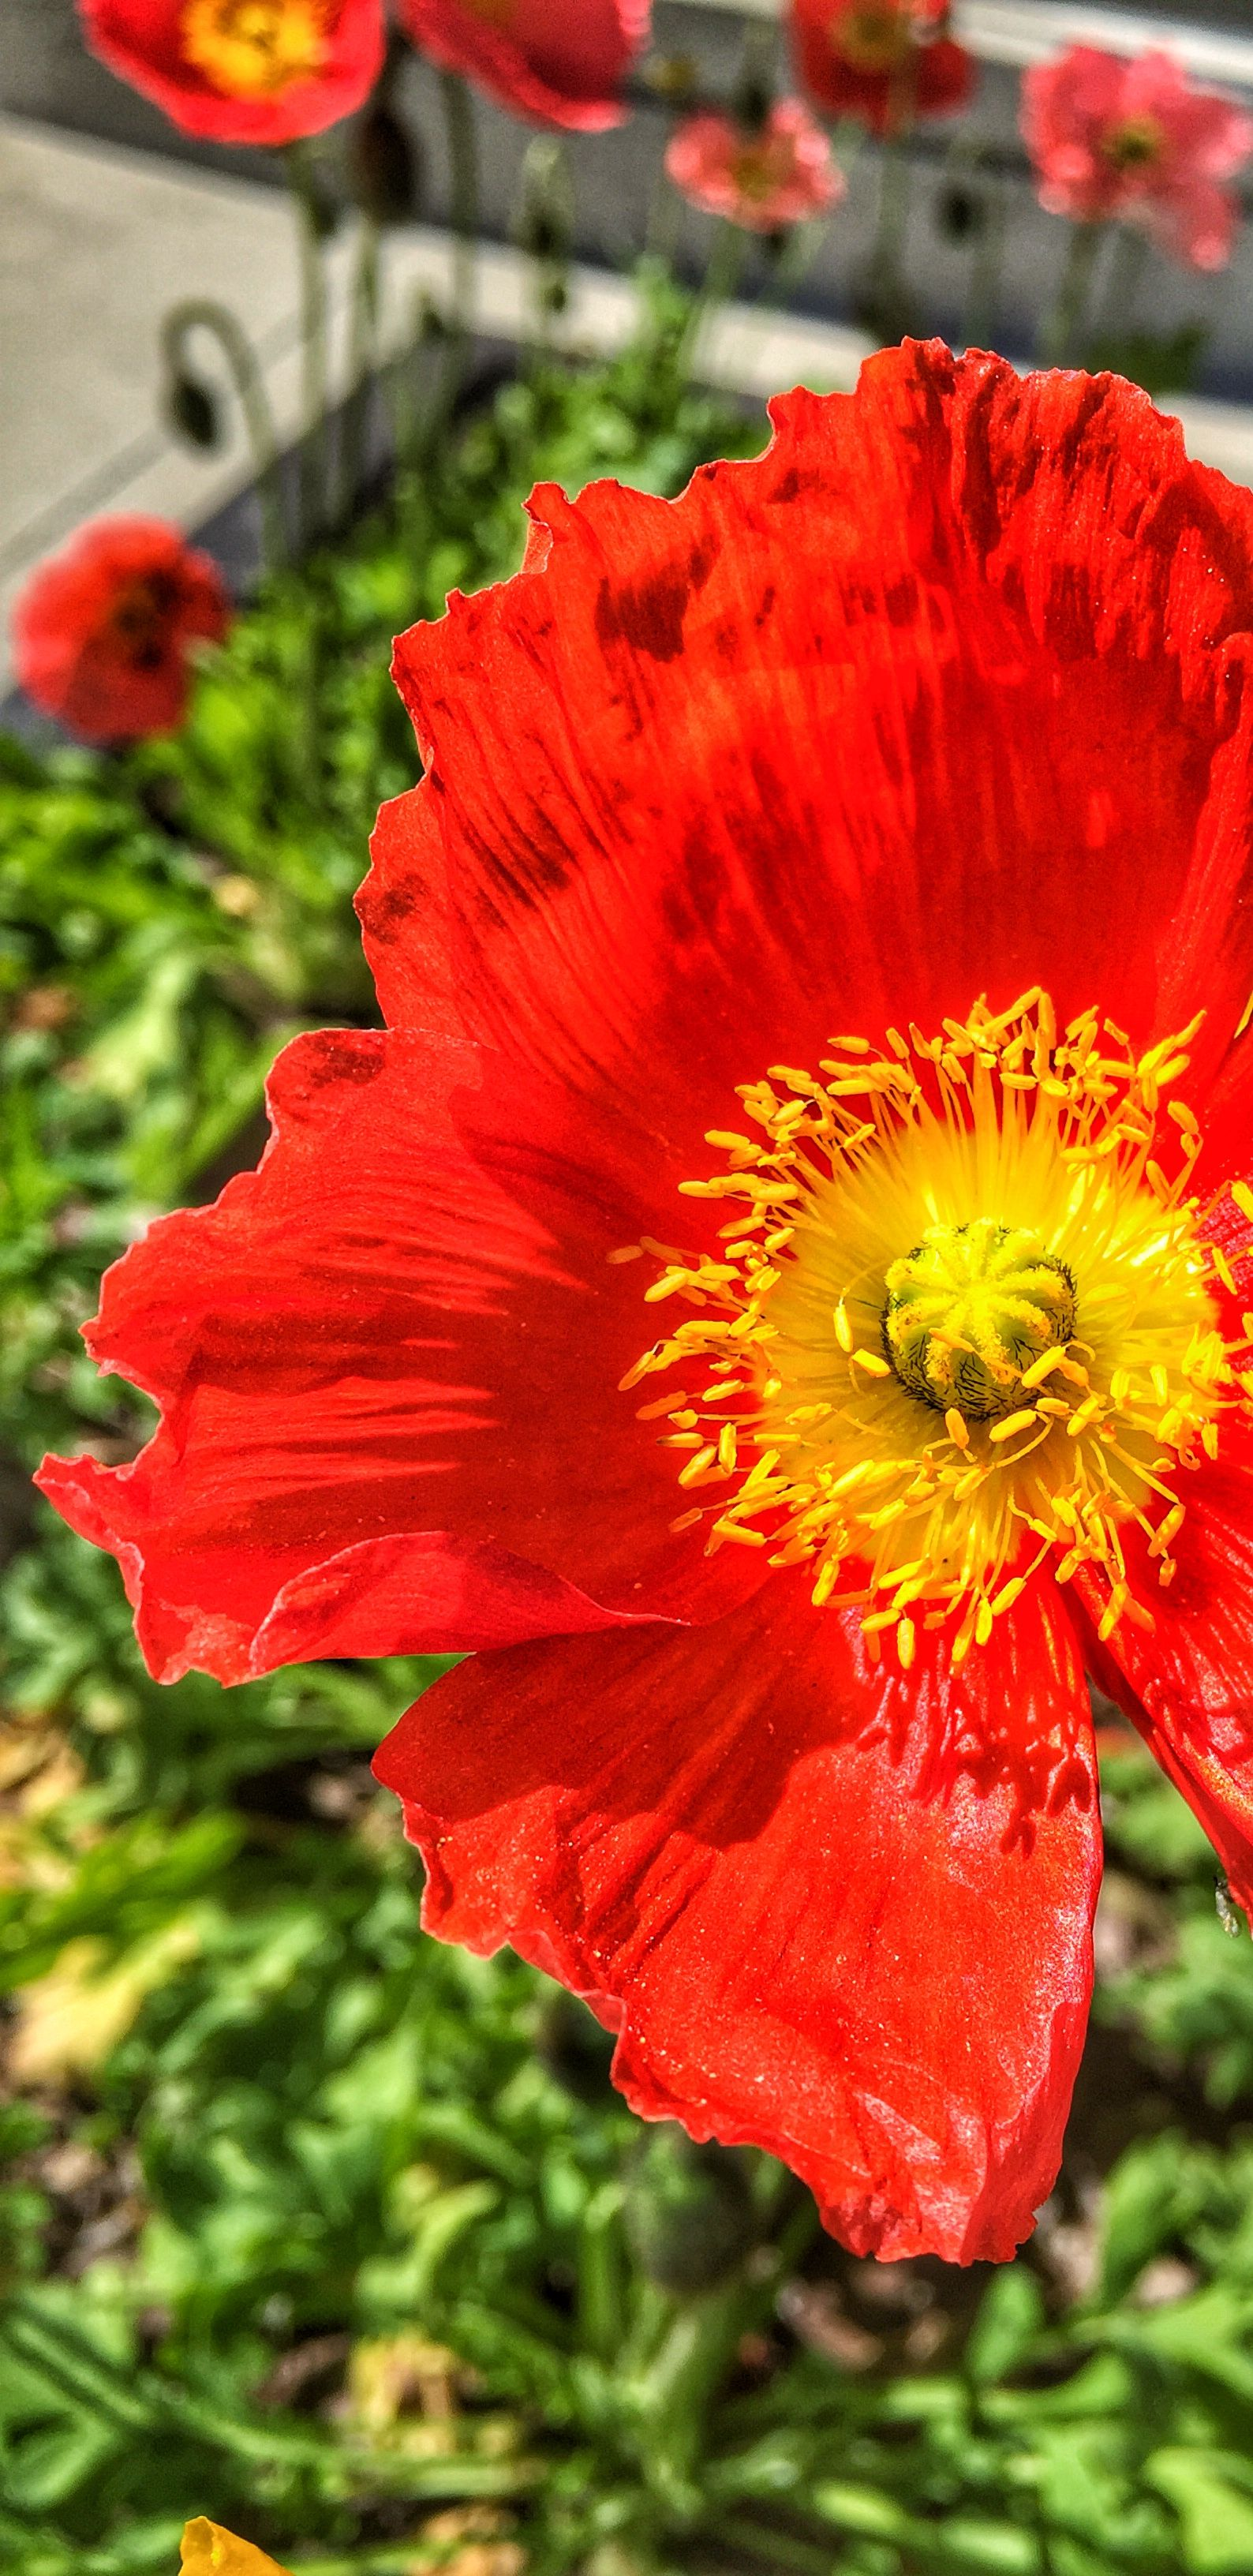 California Poppy State Flower There Are Different Colors Of The